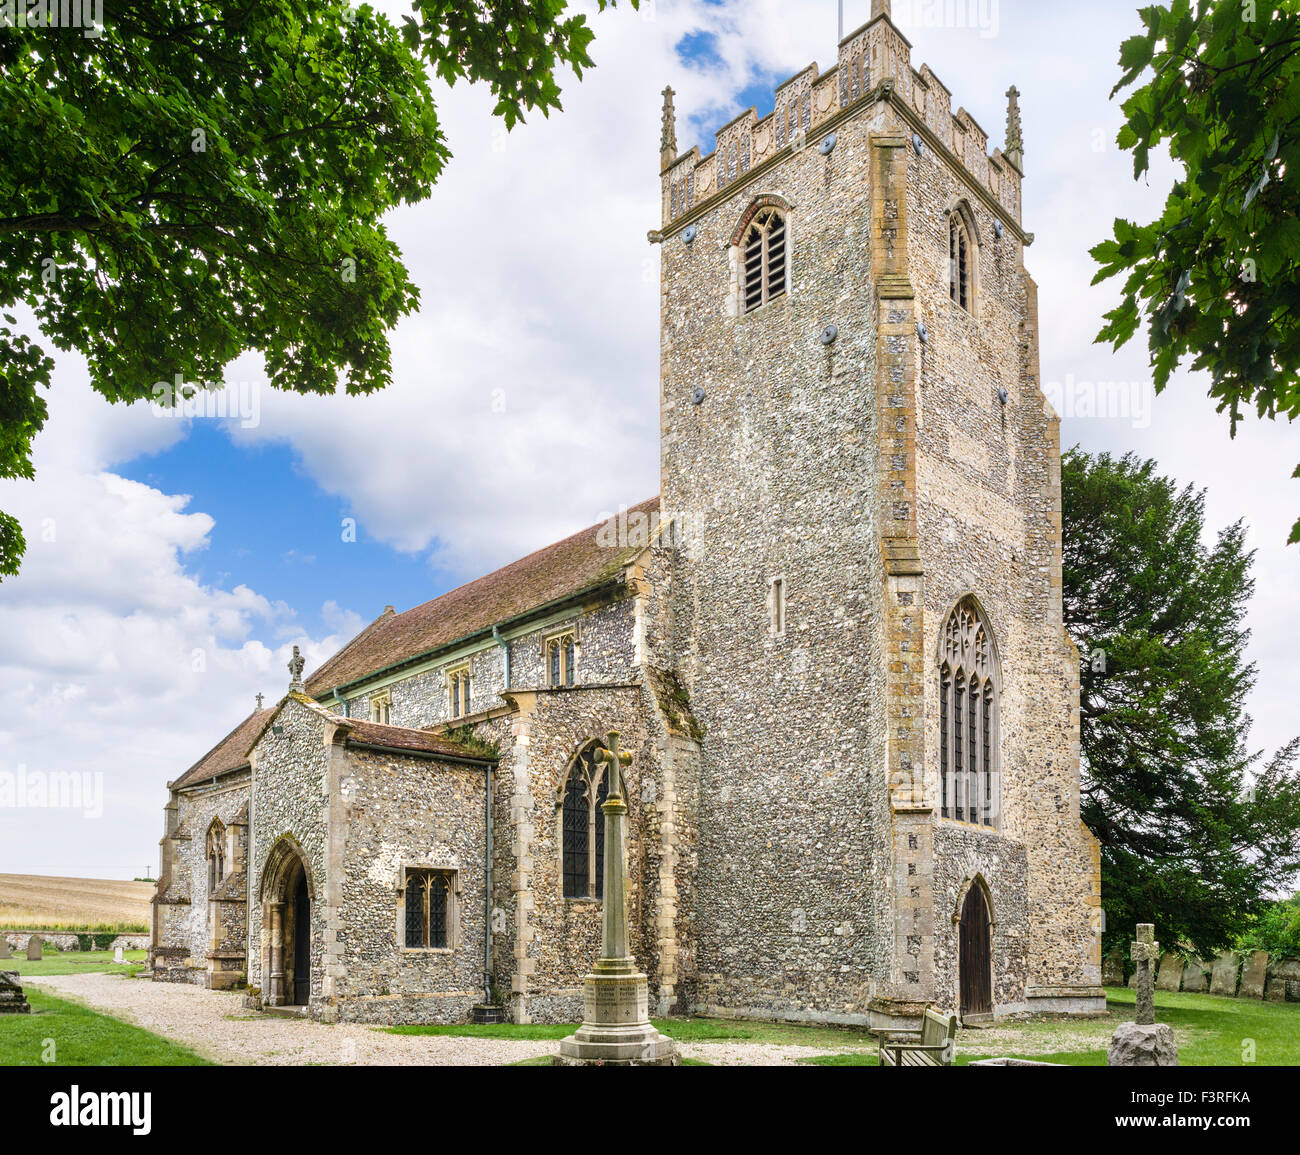 All Saints Church, Burnham Thorpe, Norfolk, UK - Nelson's father was rector & Nelson was born in the village - Stock Image